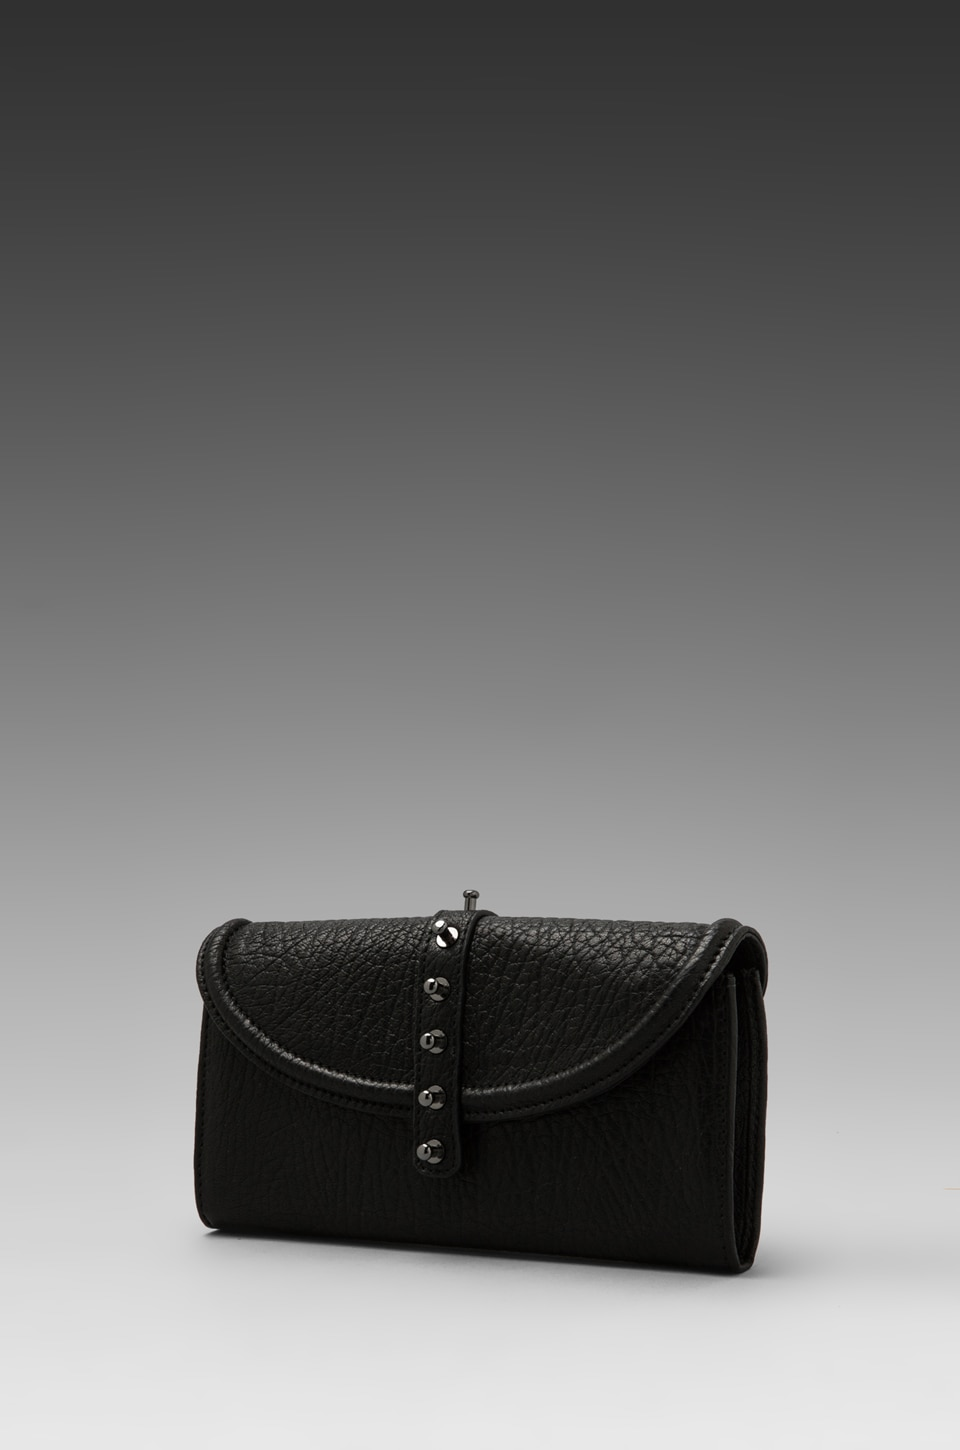 McQ Alexander McQueen Flap Wallet in Black